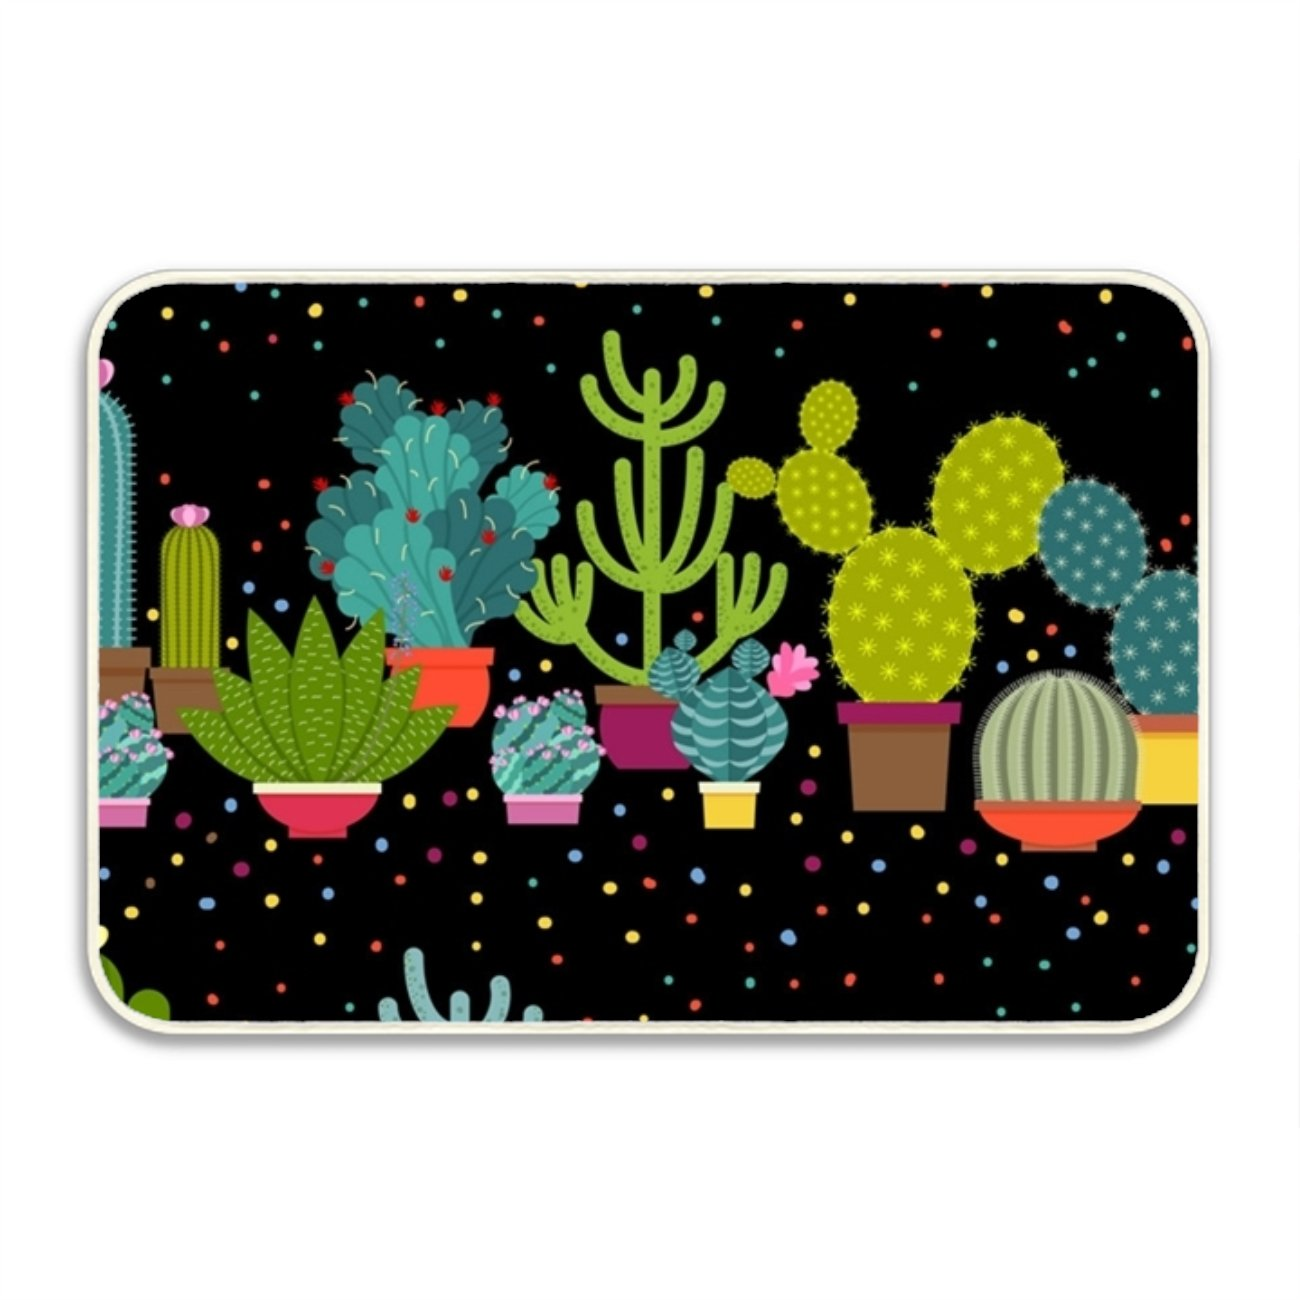 WYFG Household Welcome Mat Printed Horizontal Patterns Of Cactus For Indoor